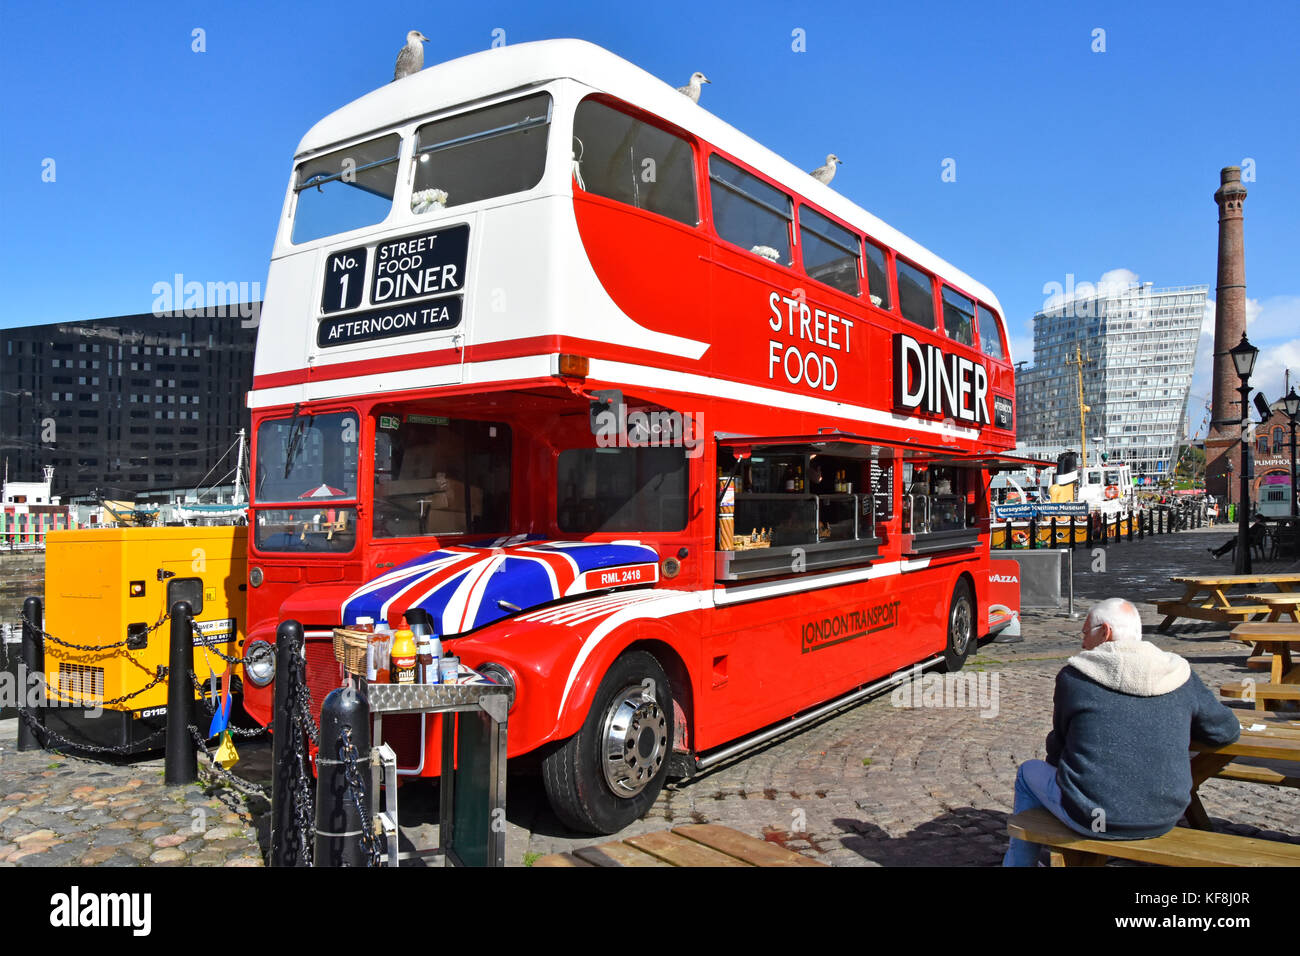 Routemaster bus converted into cafe diner come street food restaurant facility outdoor tables Liverpool albert docks - Stock Image